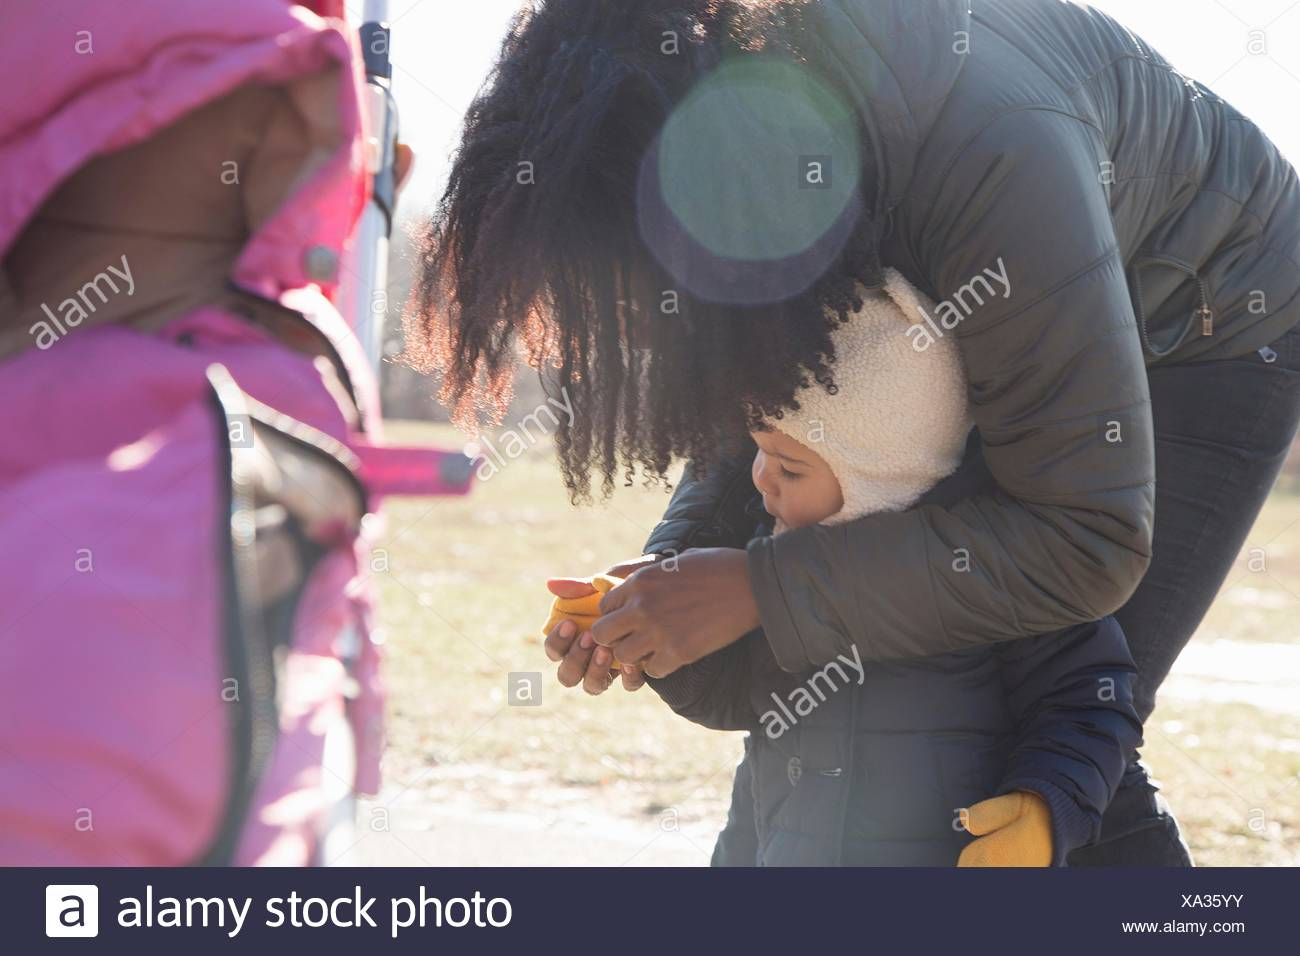 Mid adult woman putting gloves on toddler daughter in park - Stock Image